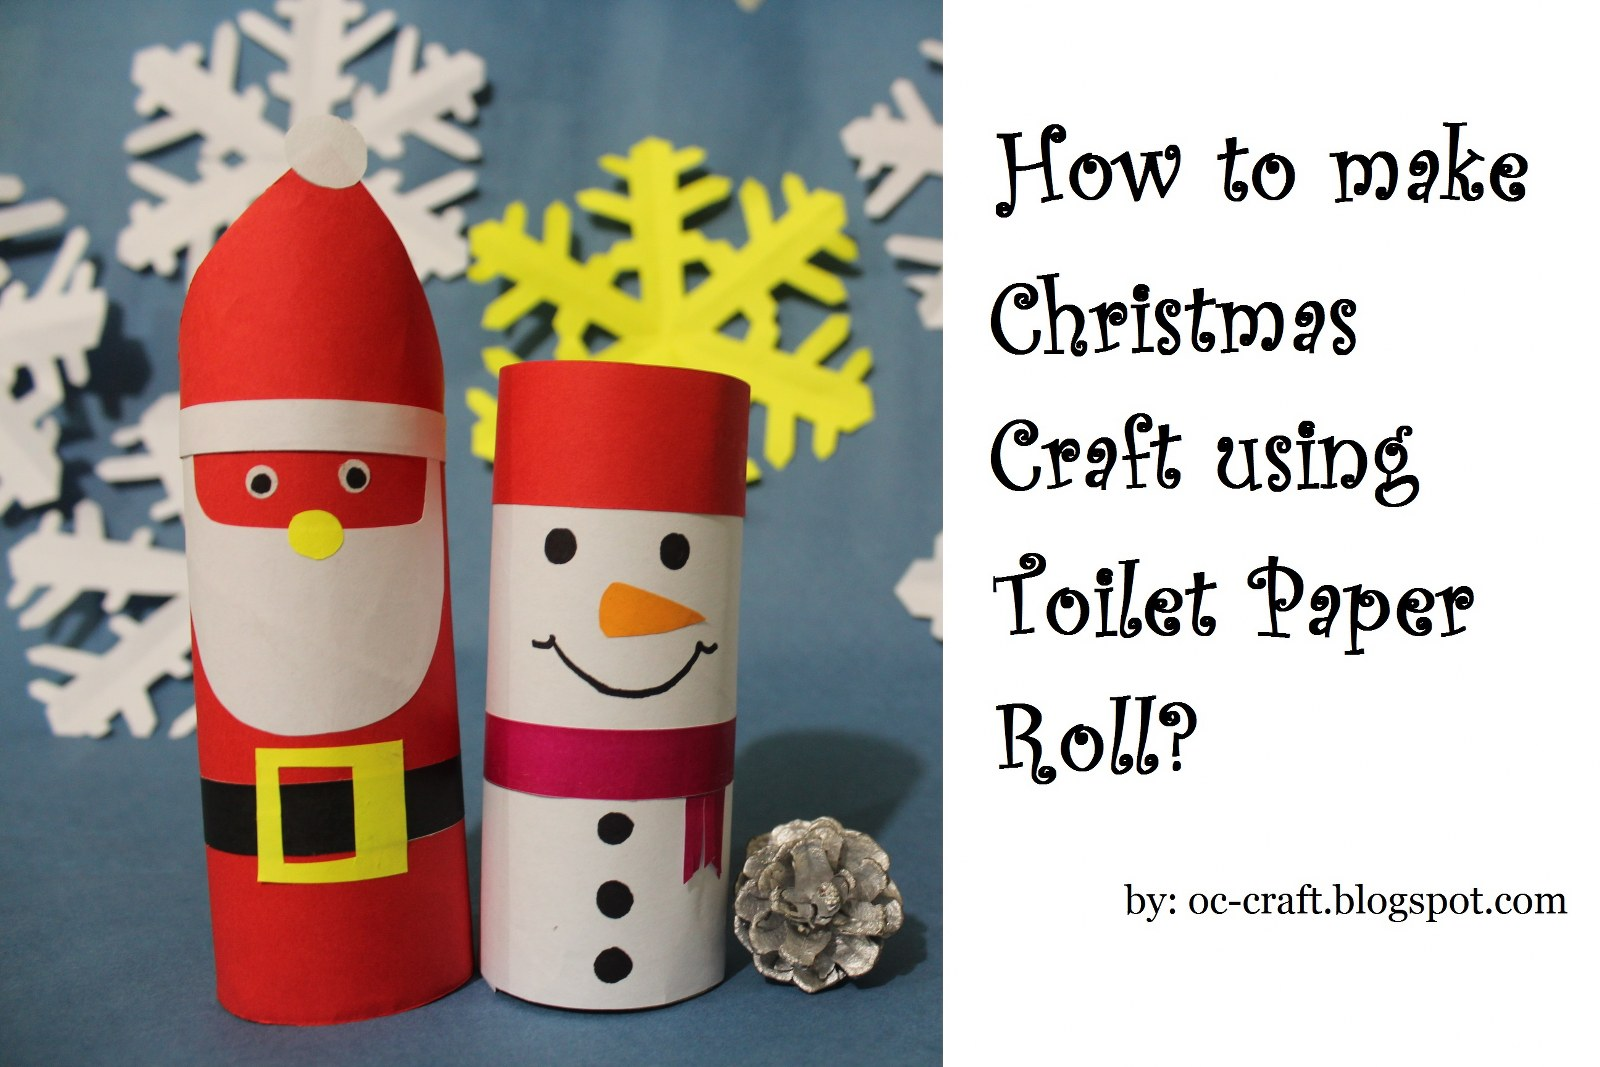 Oc craft how to make snowman christmas craft using toilet paper roll how to make snowman christmas craft using toilet paper roll jeuxipadfo Images